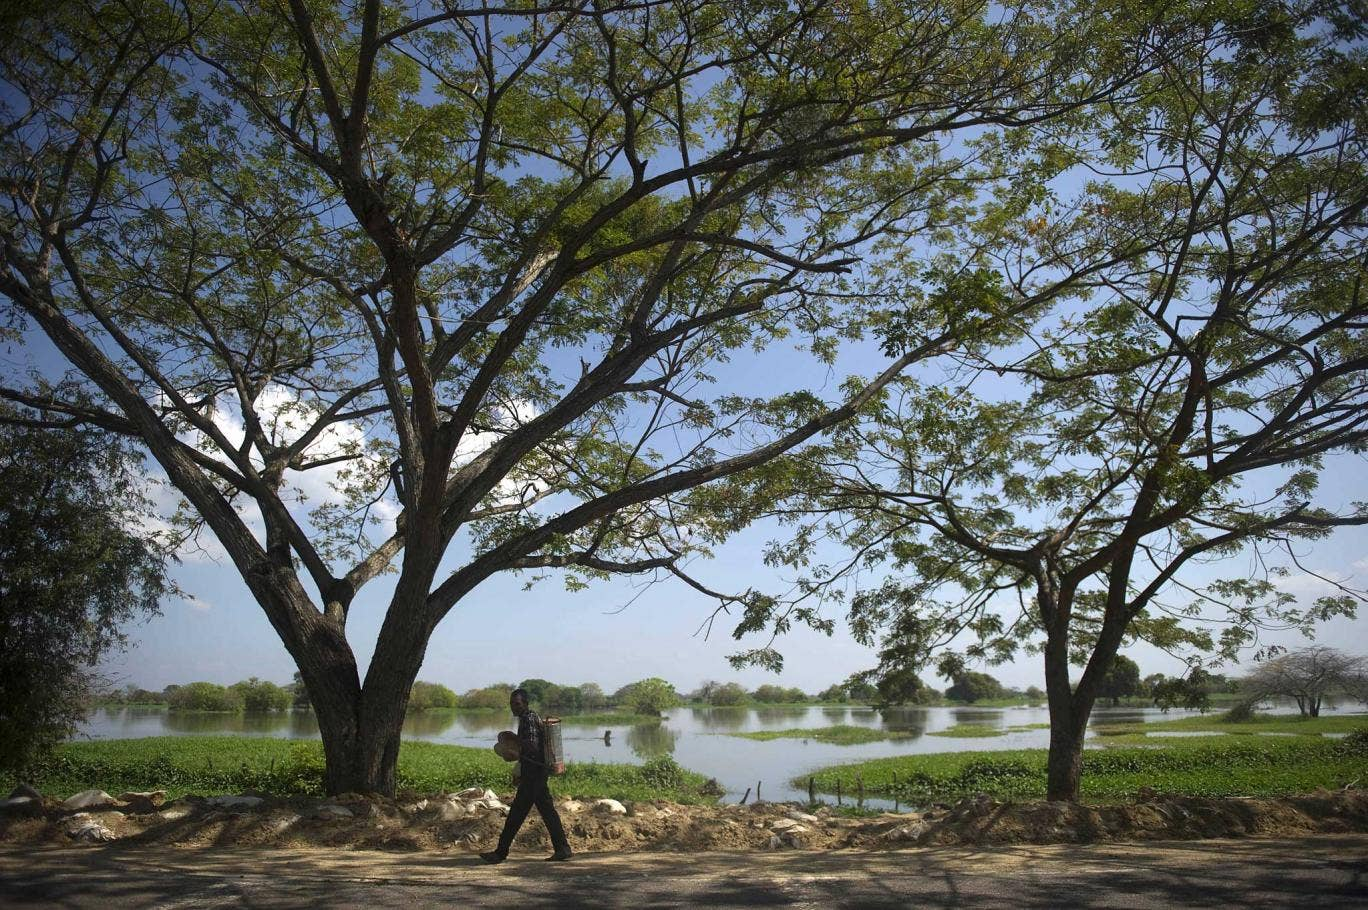 Spirited journeys: A walk along the Magdalena River